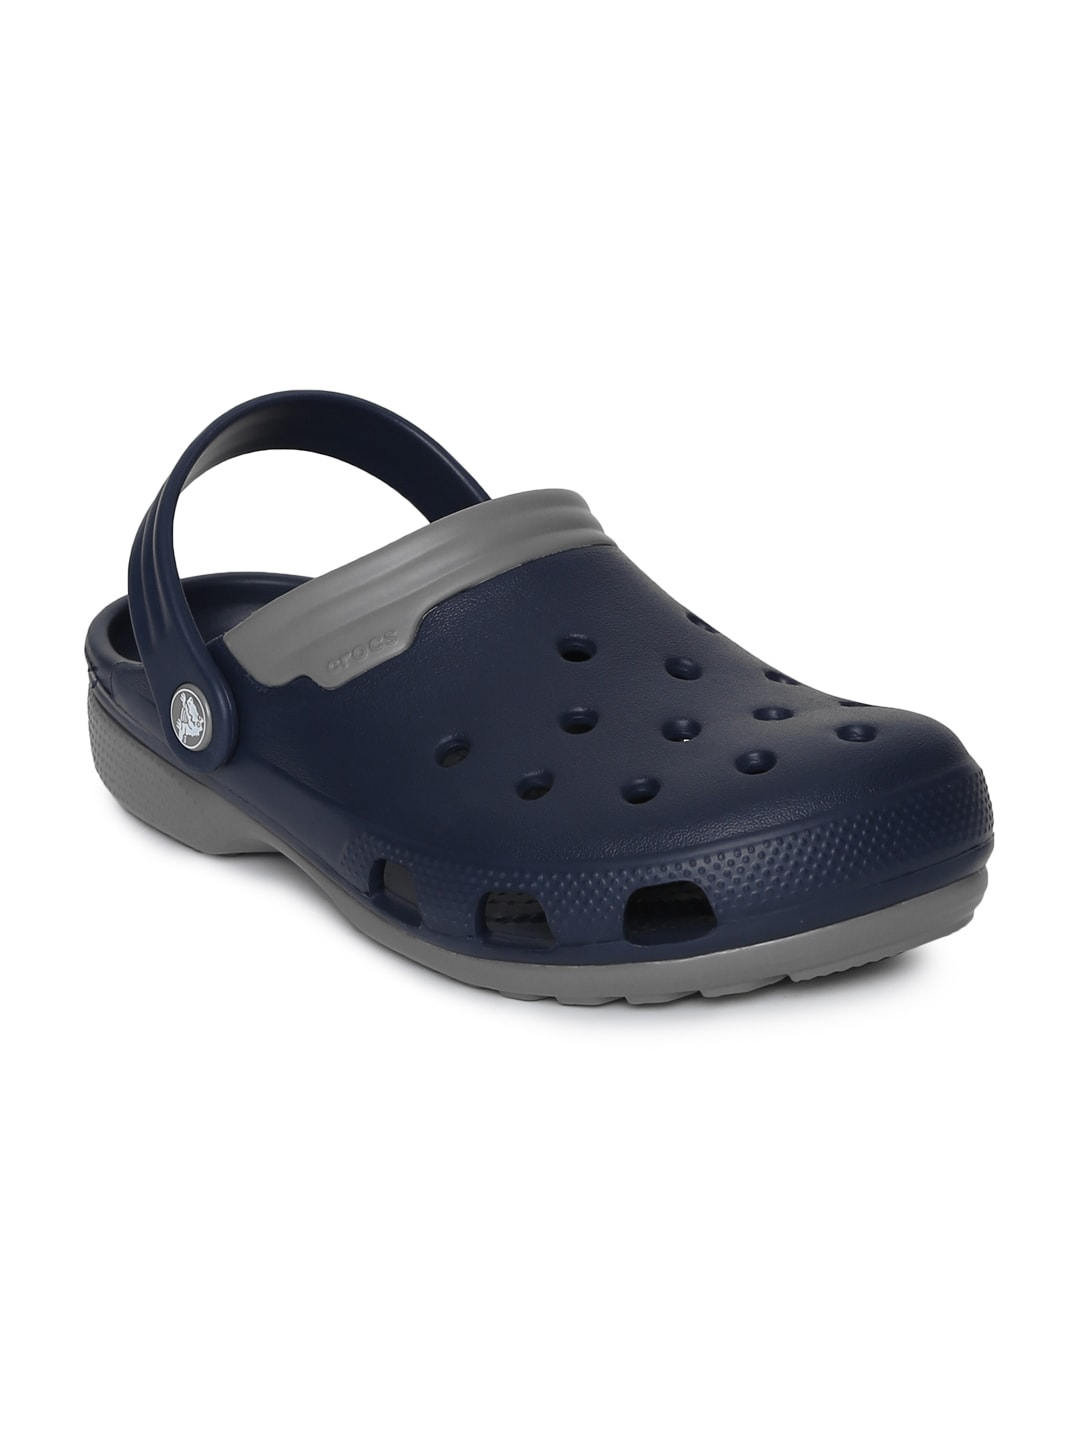 8d2f075ae28452 Crocs Men Footwear - Buy Crocs Shoes and Sandals For Men Online in India